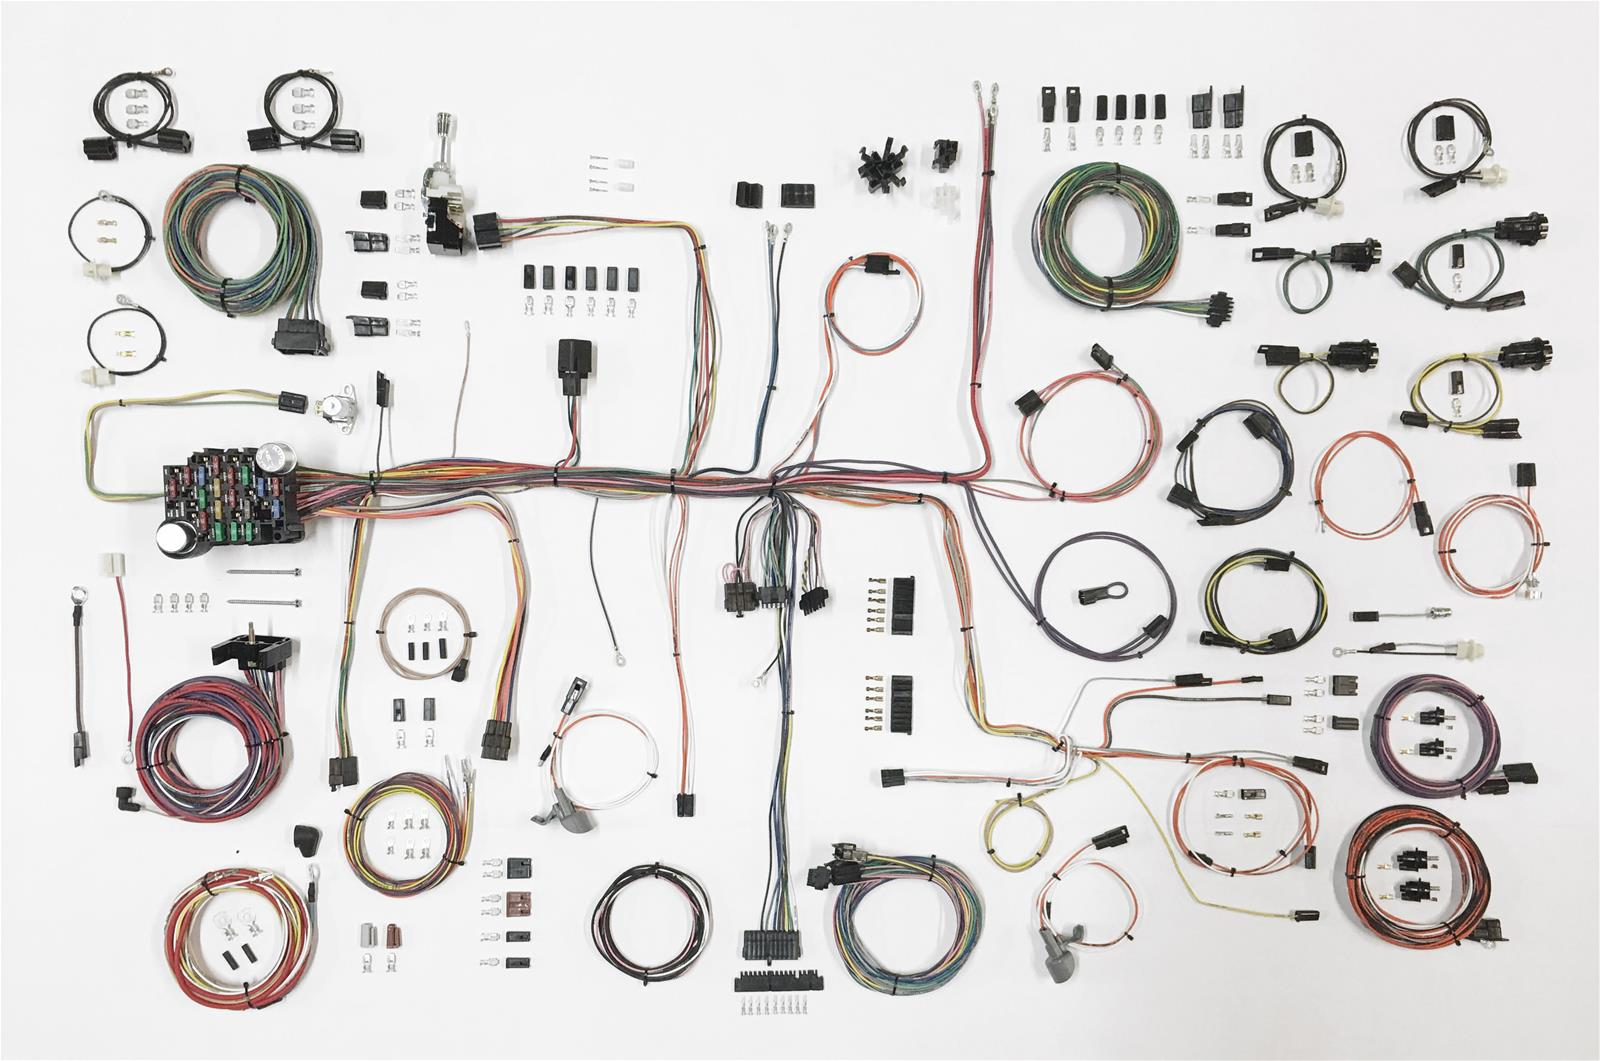 Shop for AMERICAN AUTOWIRE Full Wiring Harness - Application ... Aaw Wiring Harness on